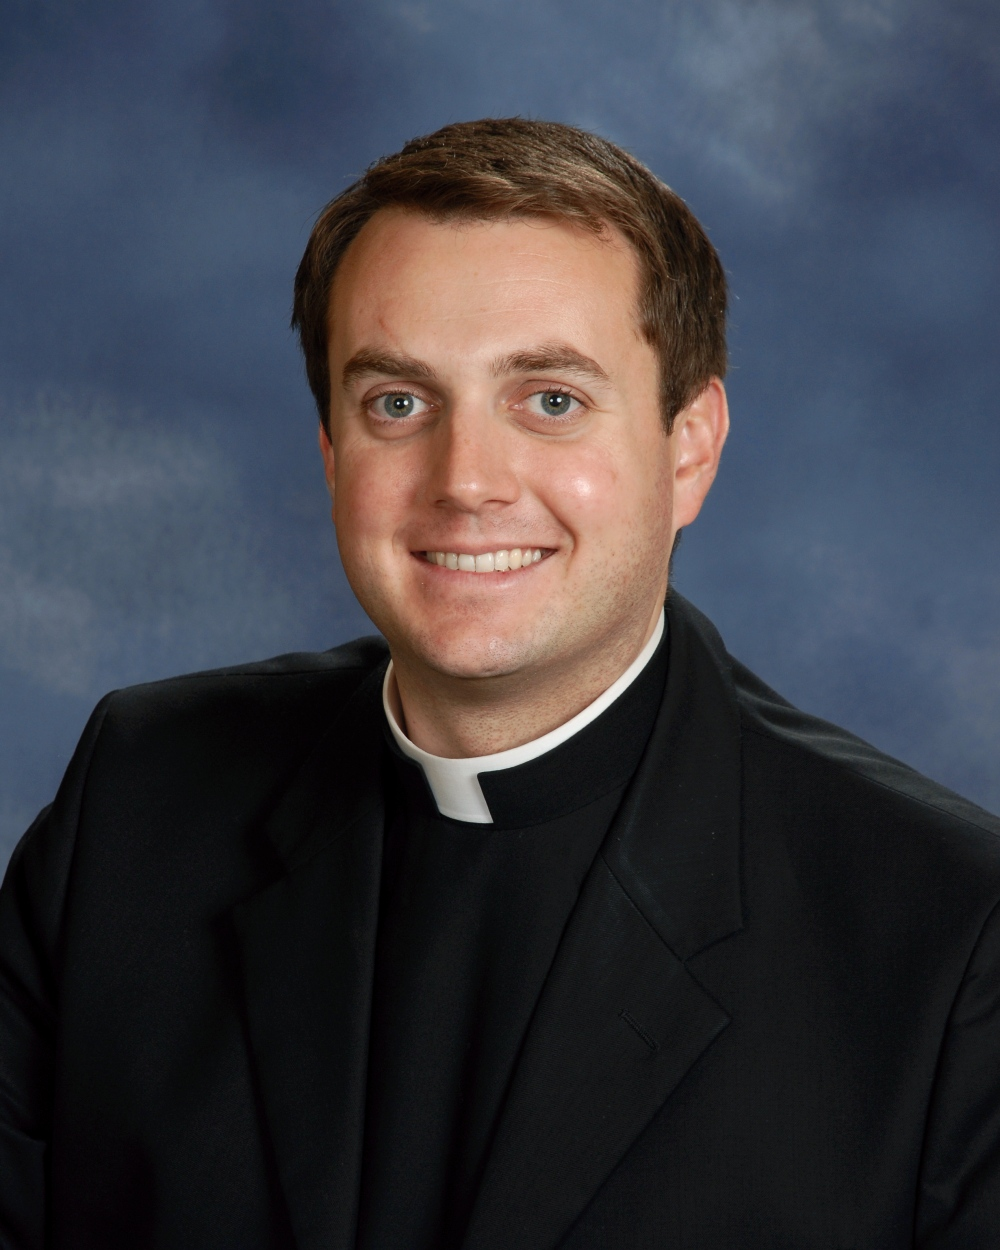 Fr. Sean Prince - 4 Years Ordained